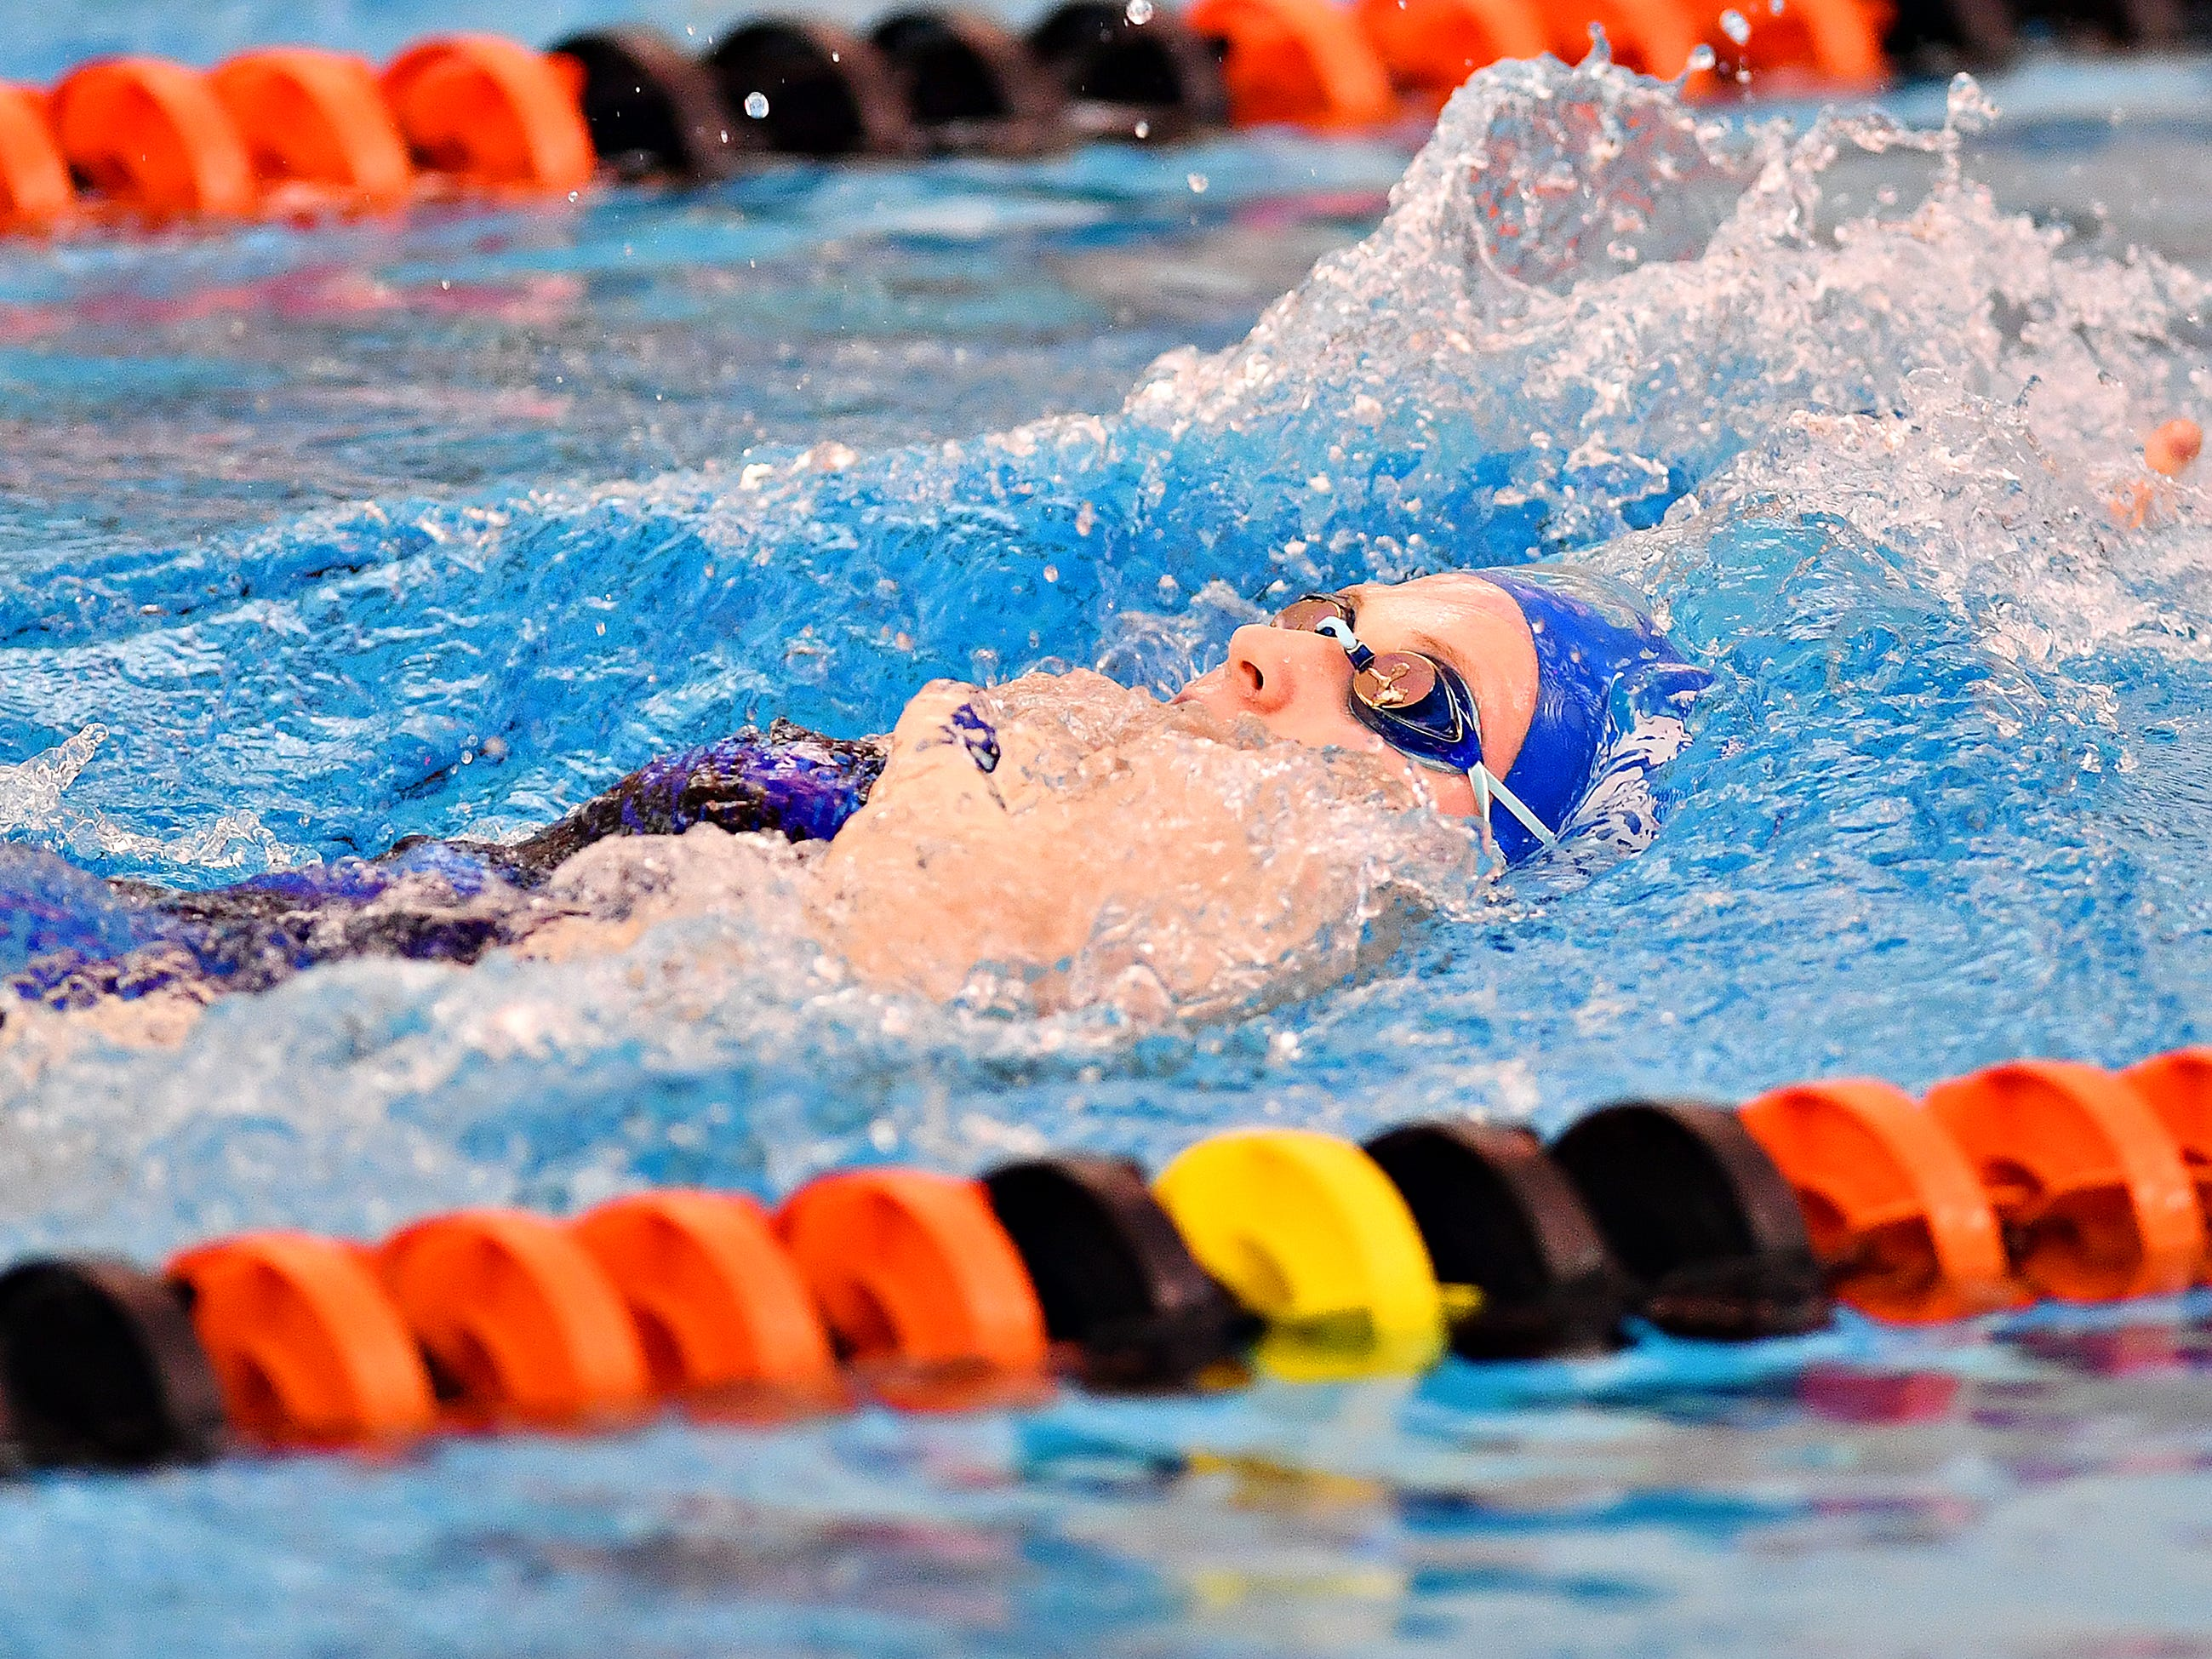 Spring Grove's Megan Heist competes in the 200 Yard Individual Medley during swimming action against Central York at Central York High School in Springettsbury Township, Thursday, Jan. 3, 2019. Dawn J. Sagert photo